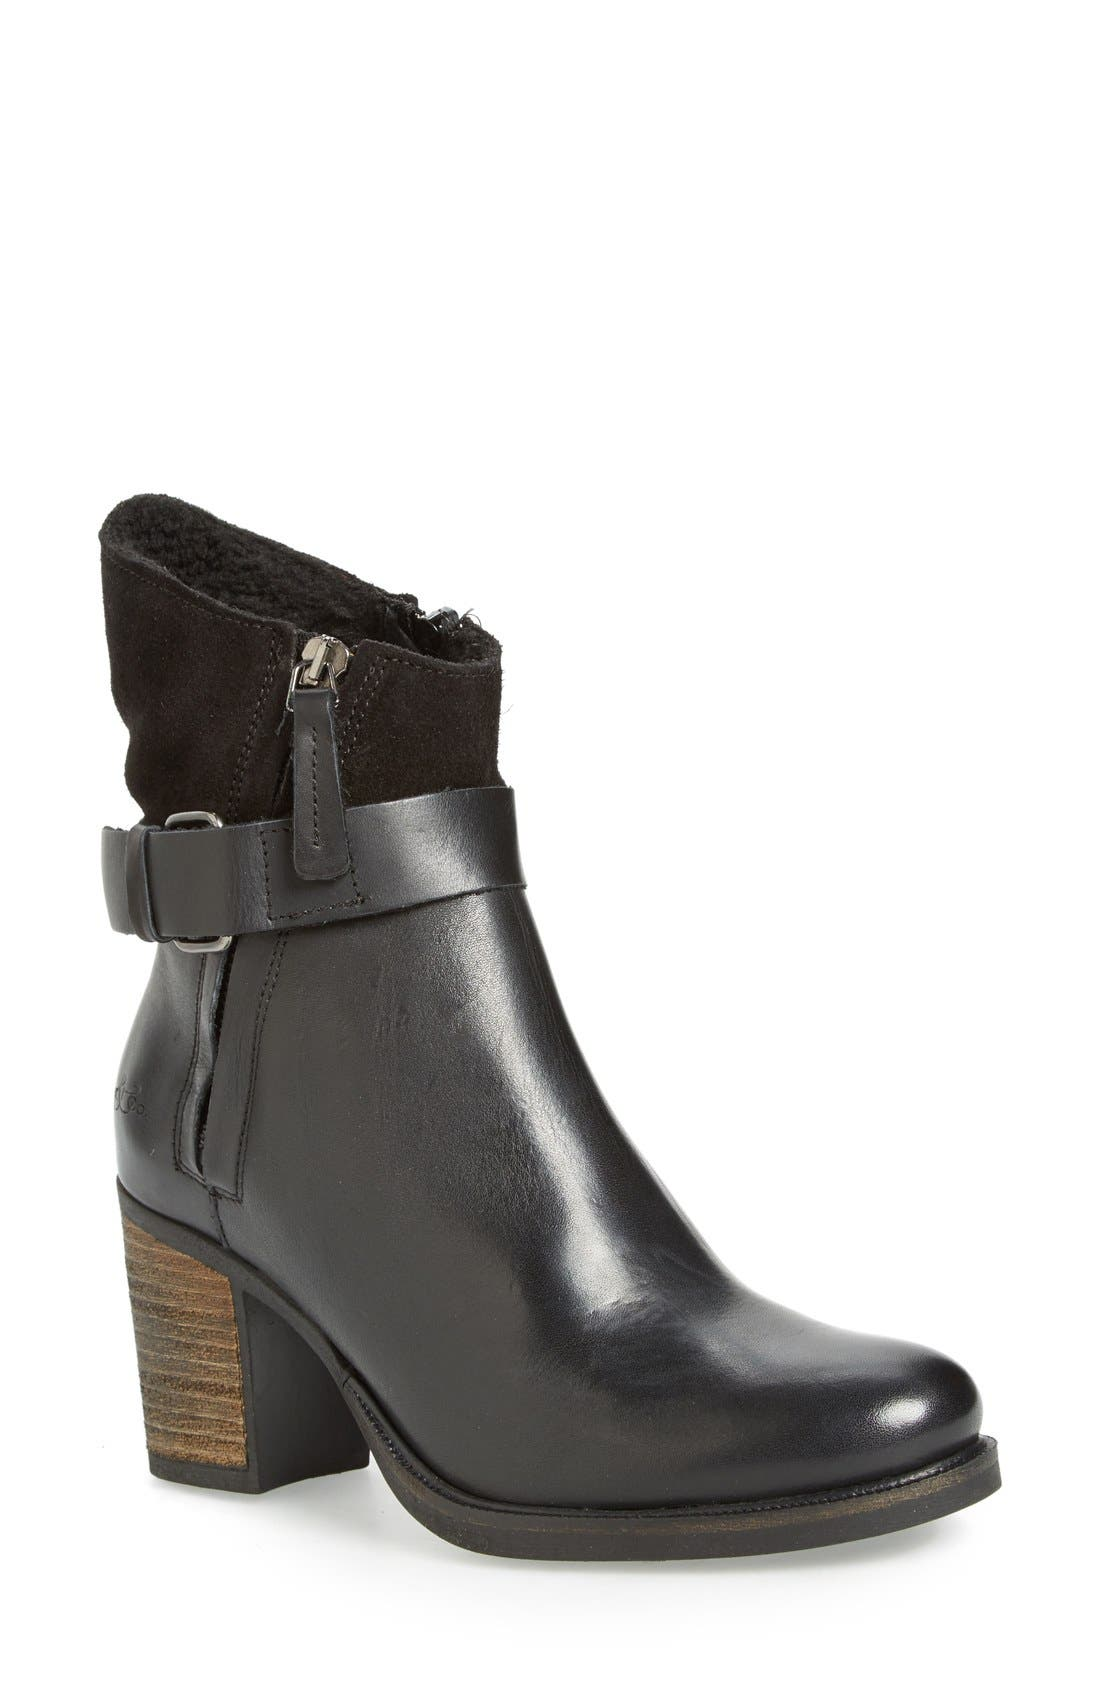 BOS. & CO. 'Bestie' Waterproof Zip Bootie